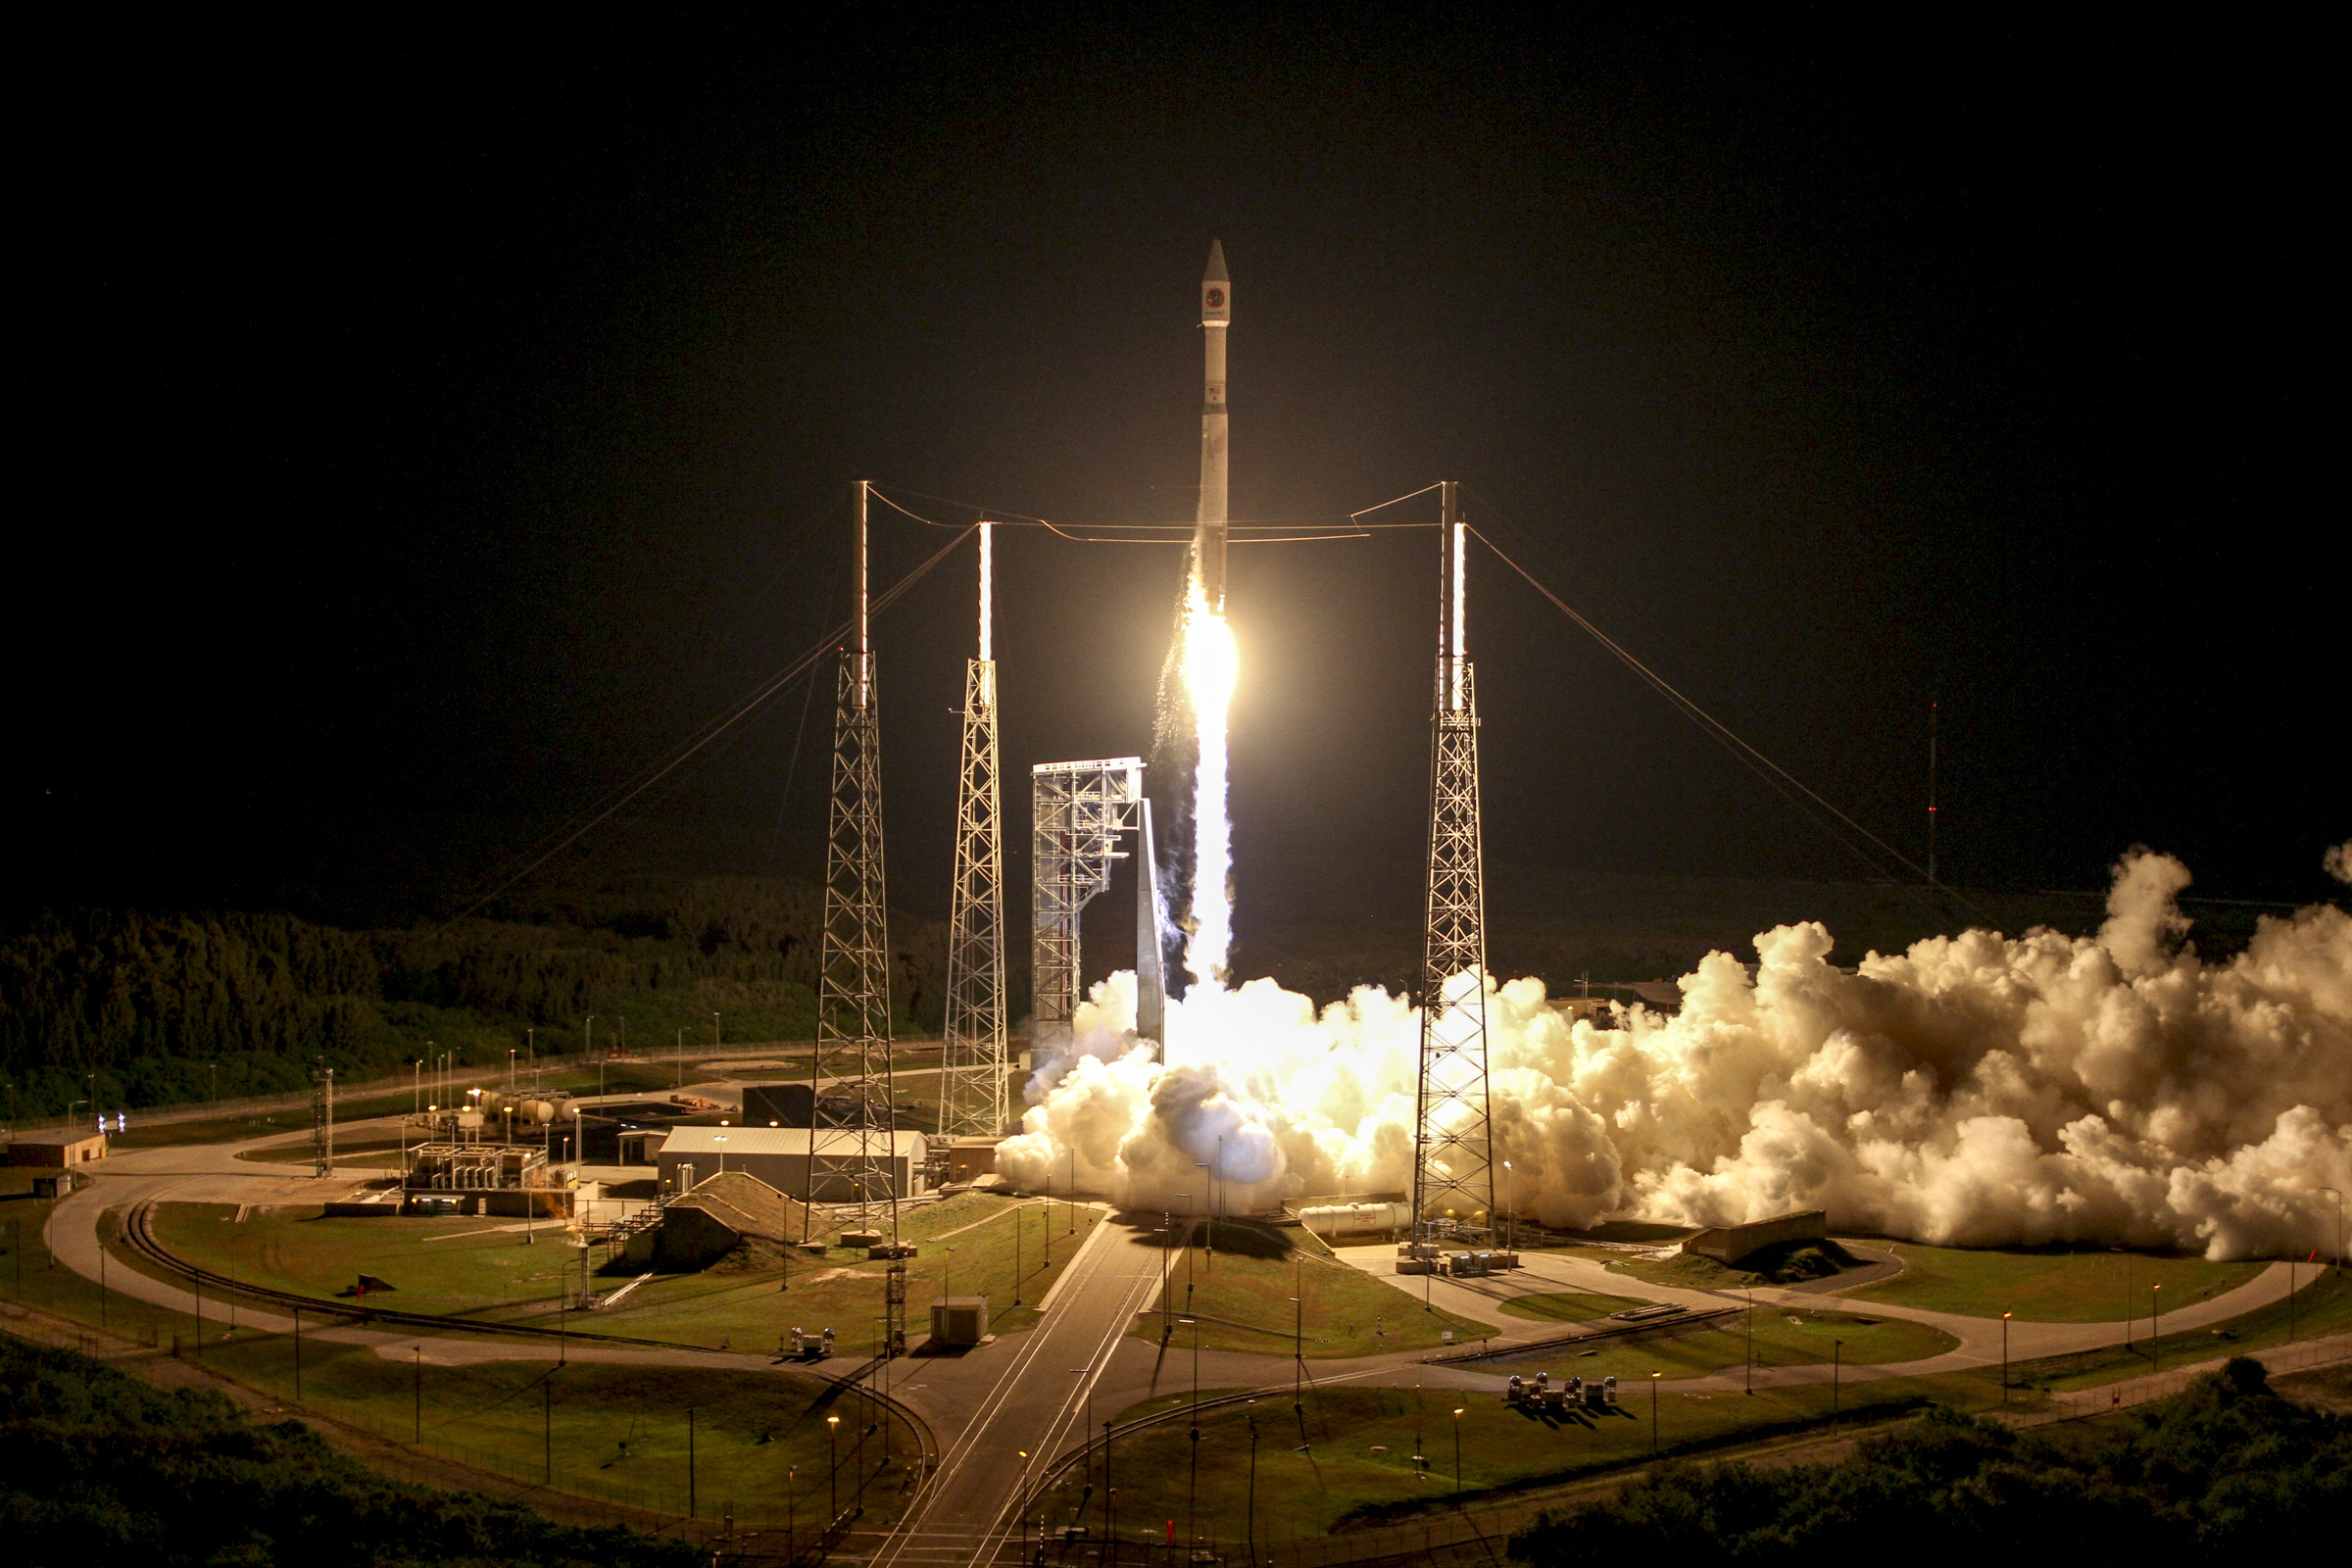 Cygnus Cargo Ship Launches, March 22, 2016